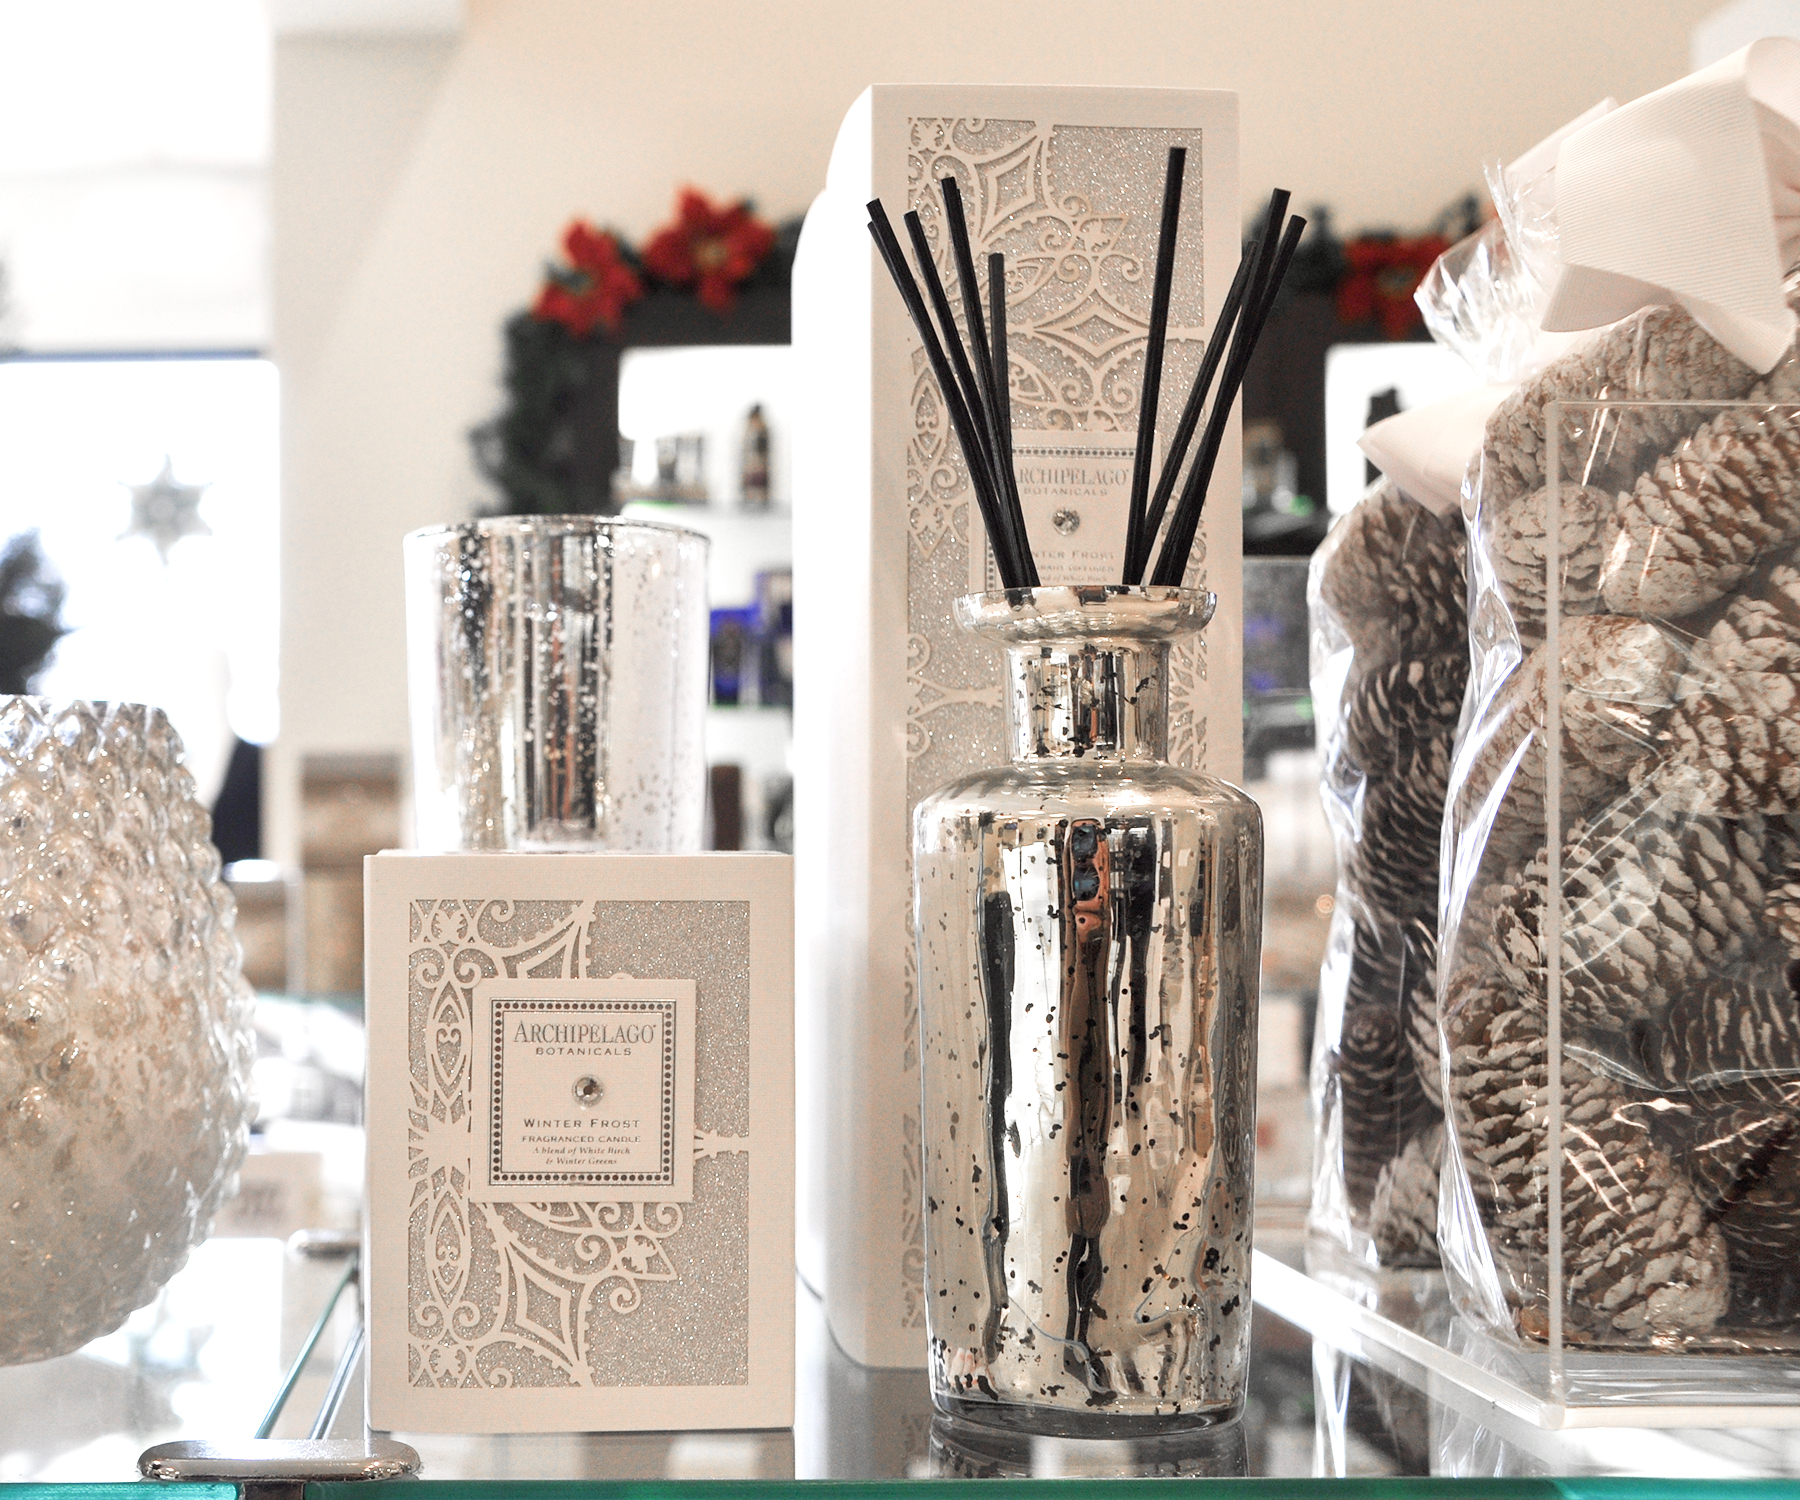 Dieci Salon & Spa Holiday Gifts